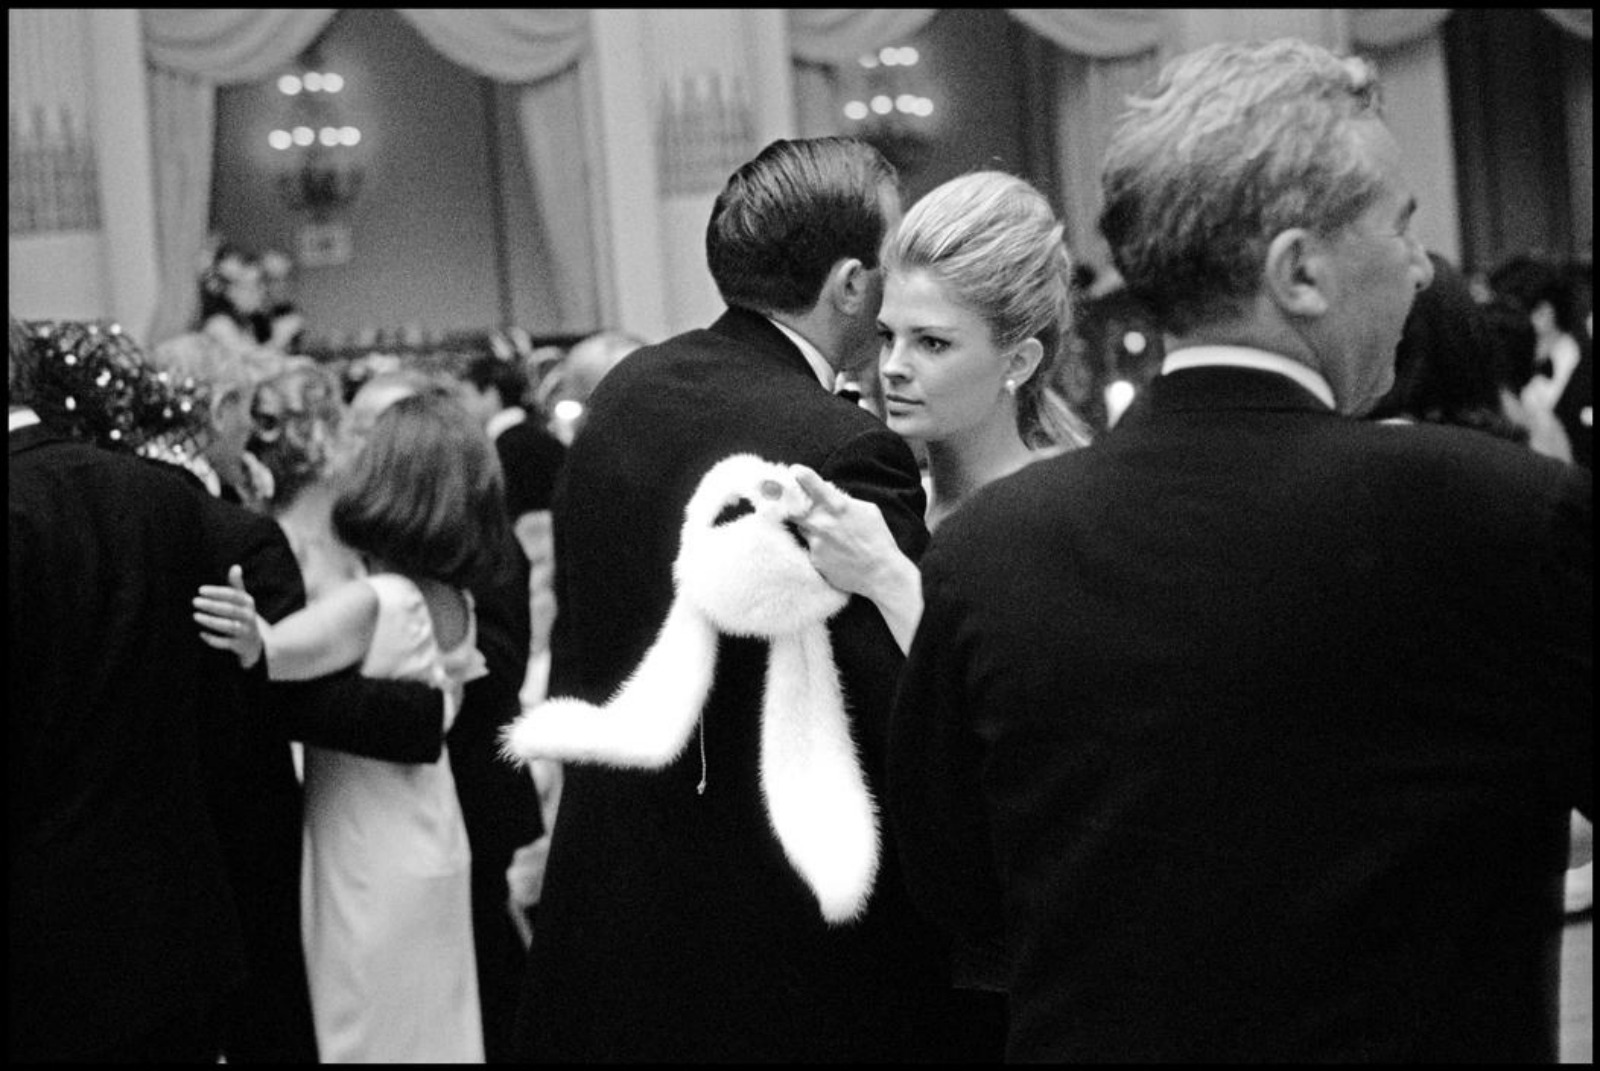 FACE-OFF...Candice Bergen takes a break from the mask at Capote's ball